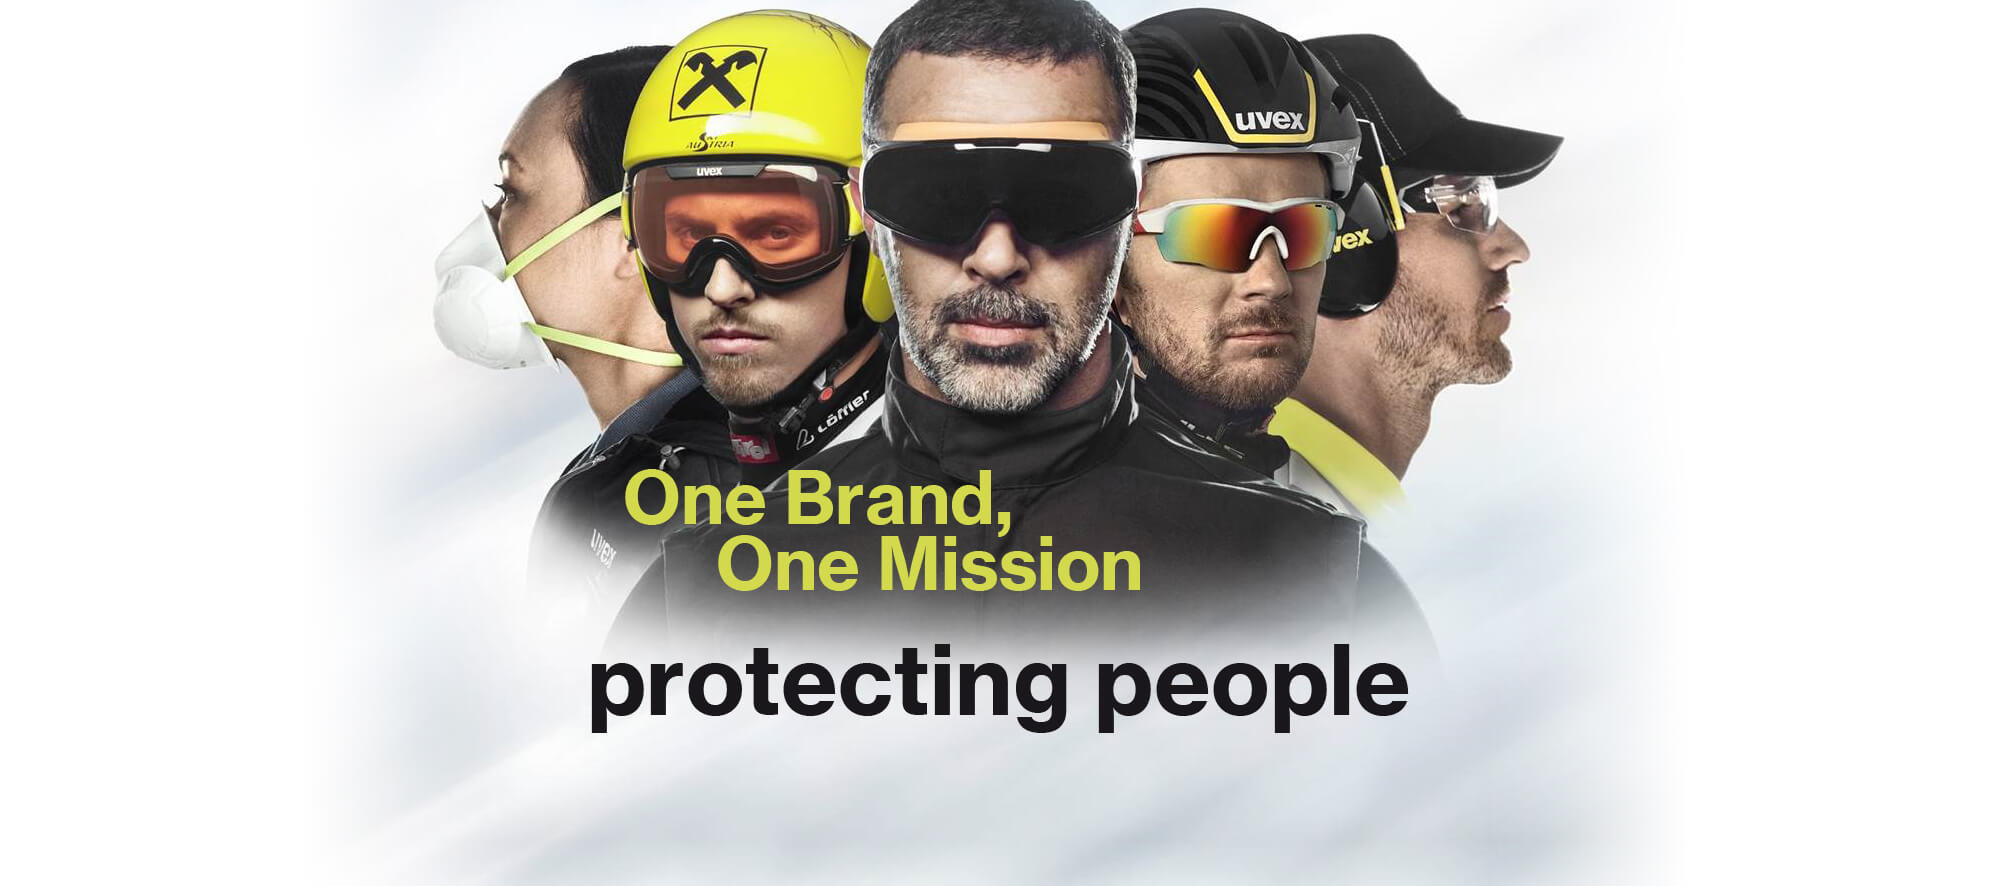 The uvex mission is to protect people